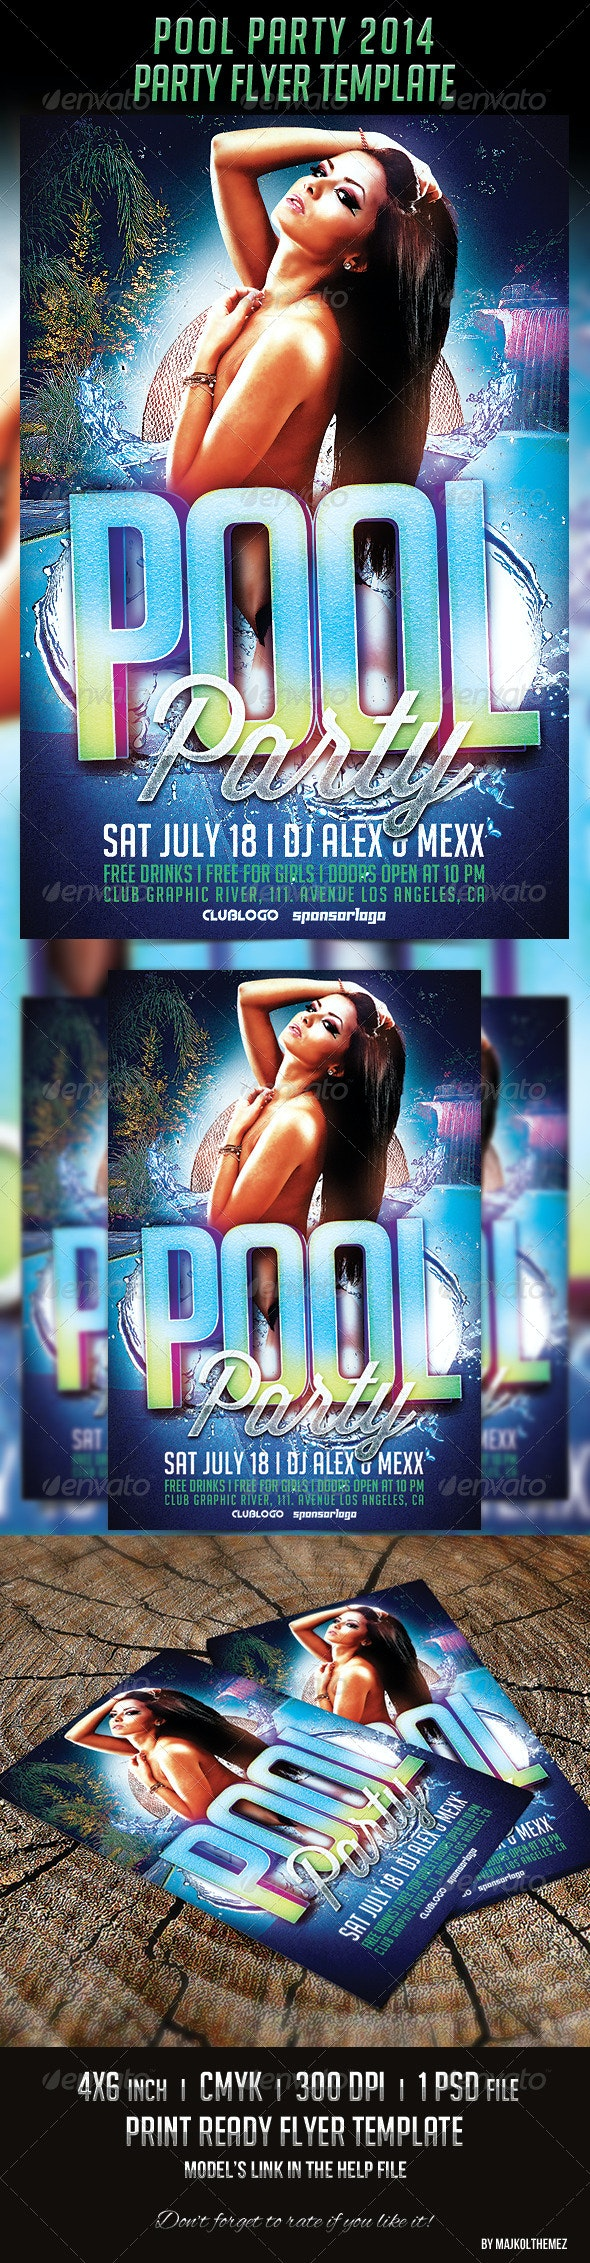 Pool Party 2014 Flyer Template - Clubs & Parties Events